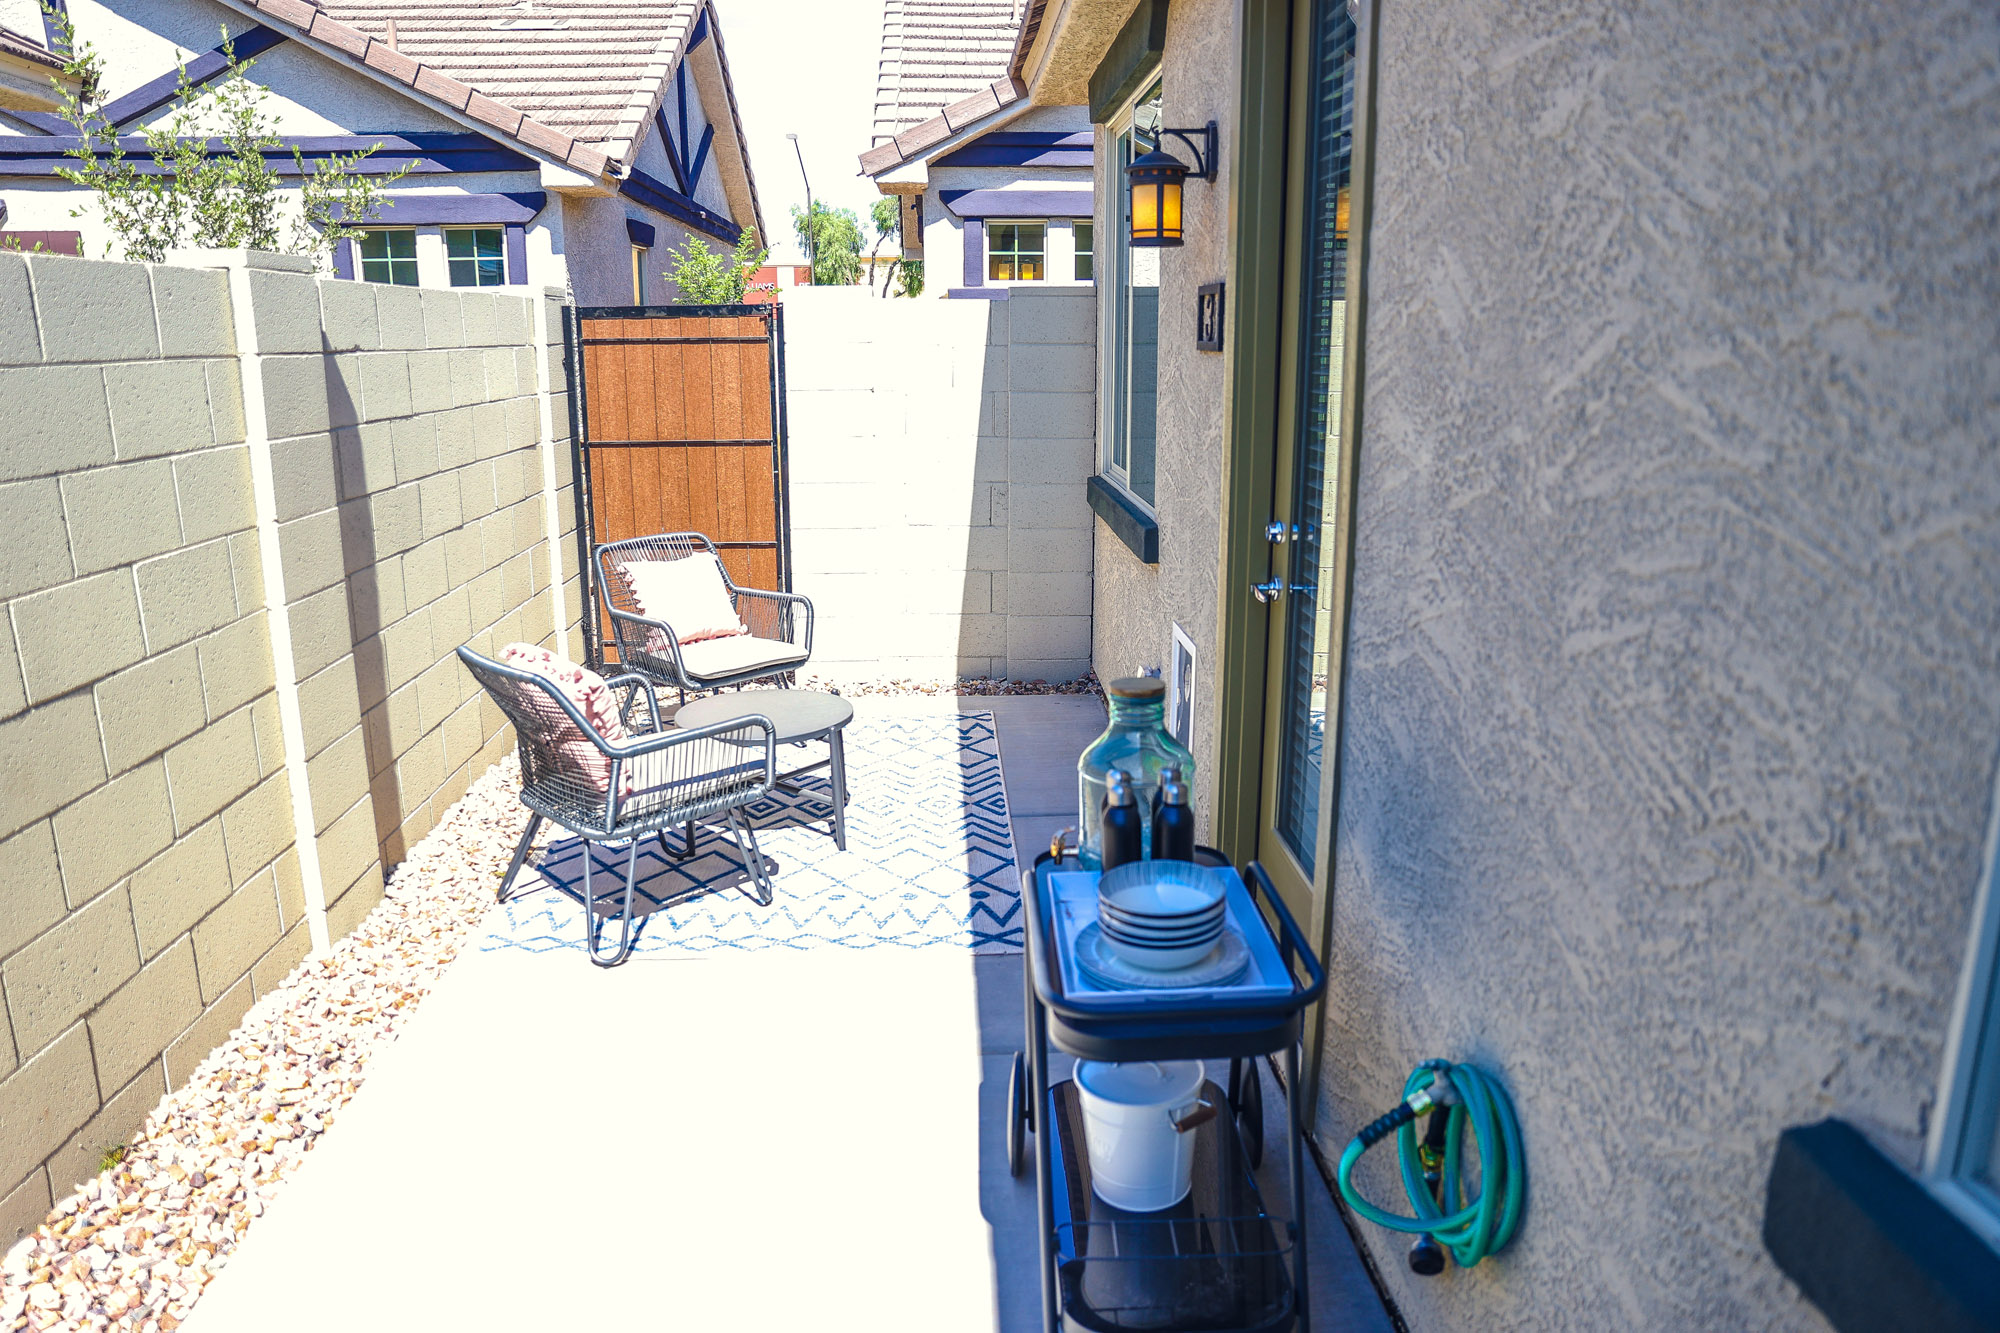 Private backyard at Olive Marketplace Apartments in Glendale, AZ